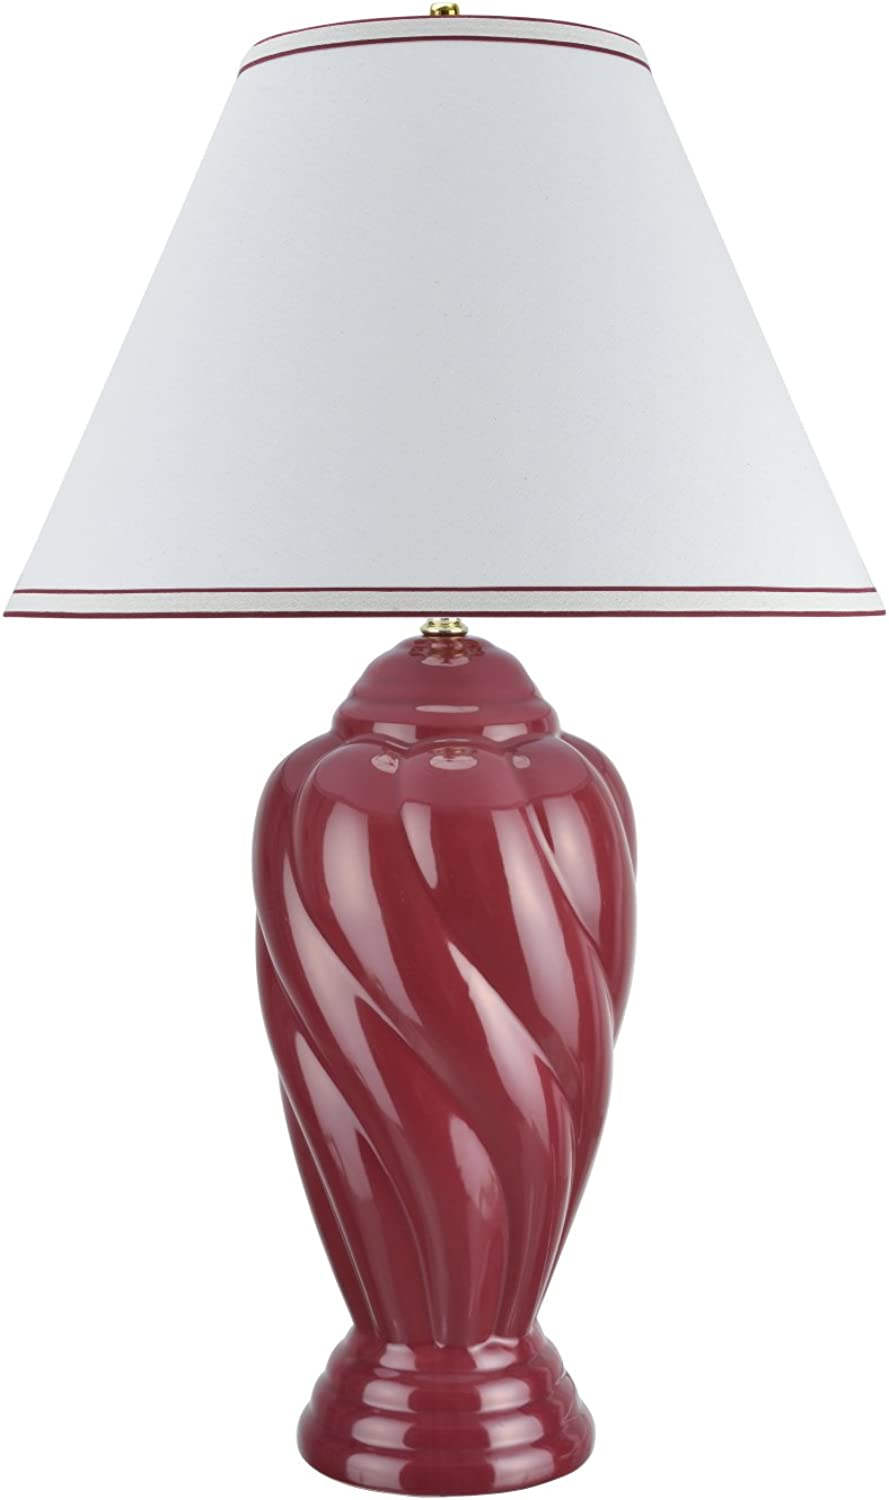 Aspen Creative 40064-3, 30  High Traditional Ceramic Table Lamp, Burgundy Finish with Hardback Empire Shaped Lamp Shade in Off White, 18  Wide